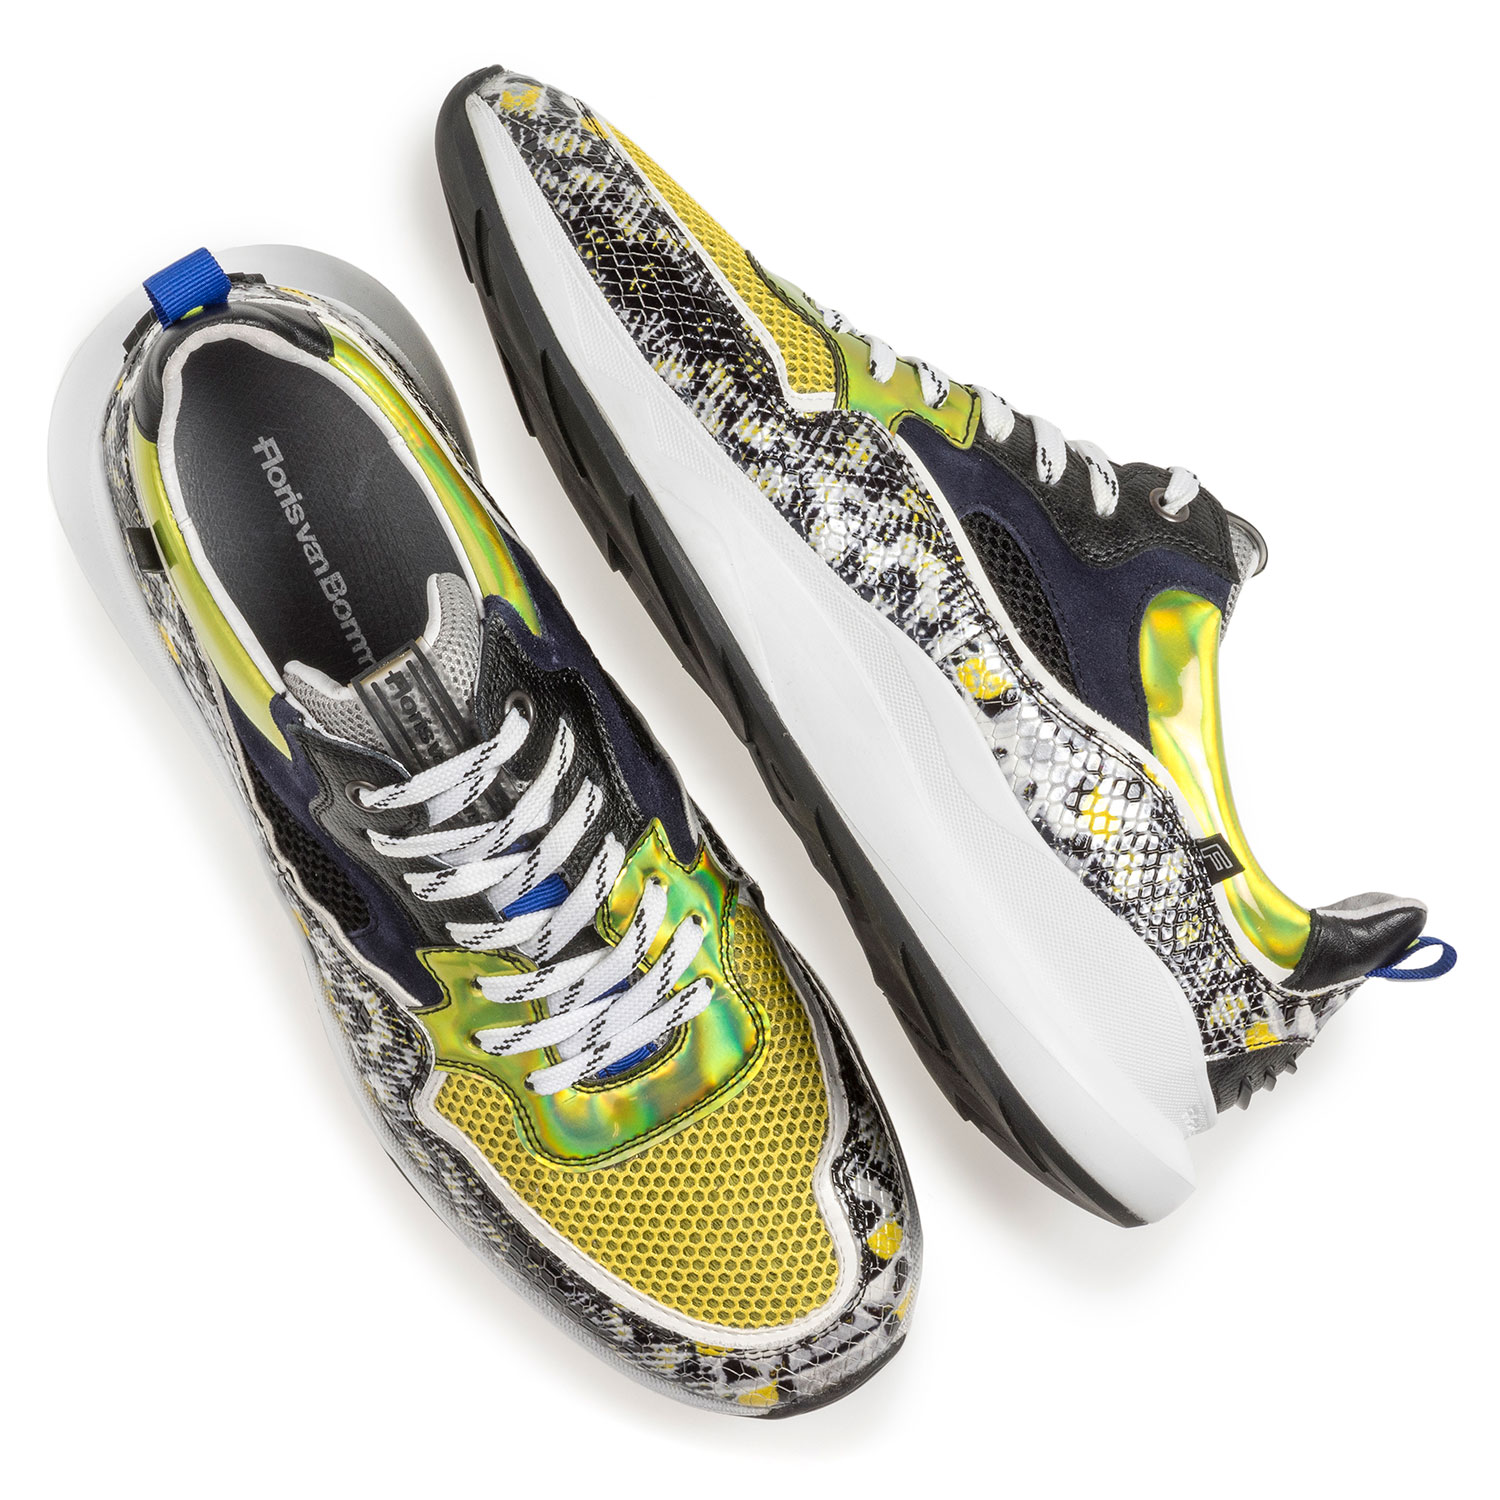 16269/23 - Multi-colour sneaker with grey and yellow print